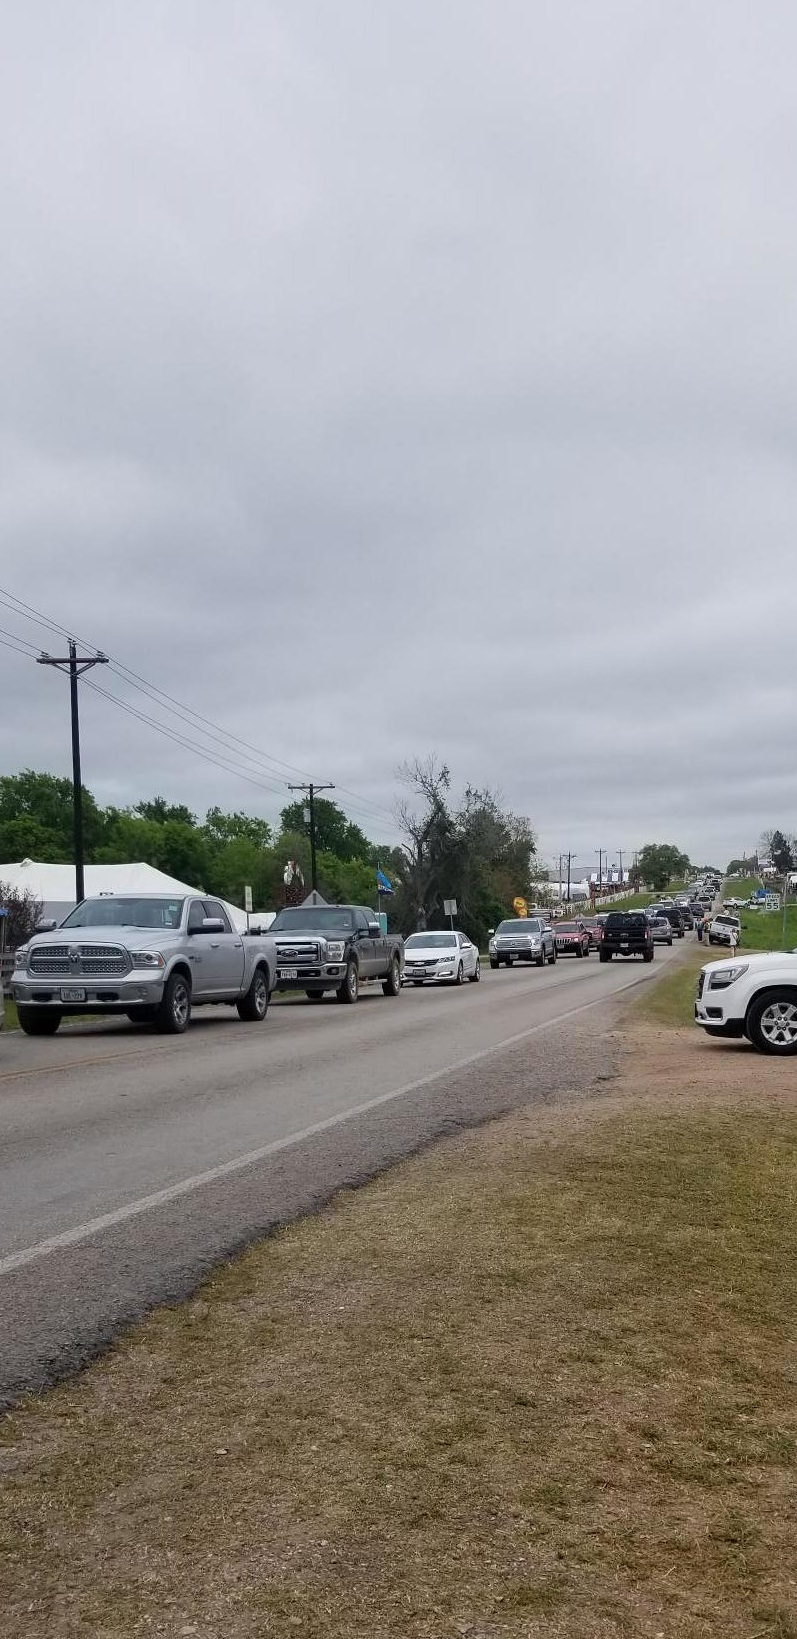 The traffic on the one-way-in, one-way-out road to Roundtop is like this everyday, for about 3 weeks.